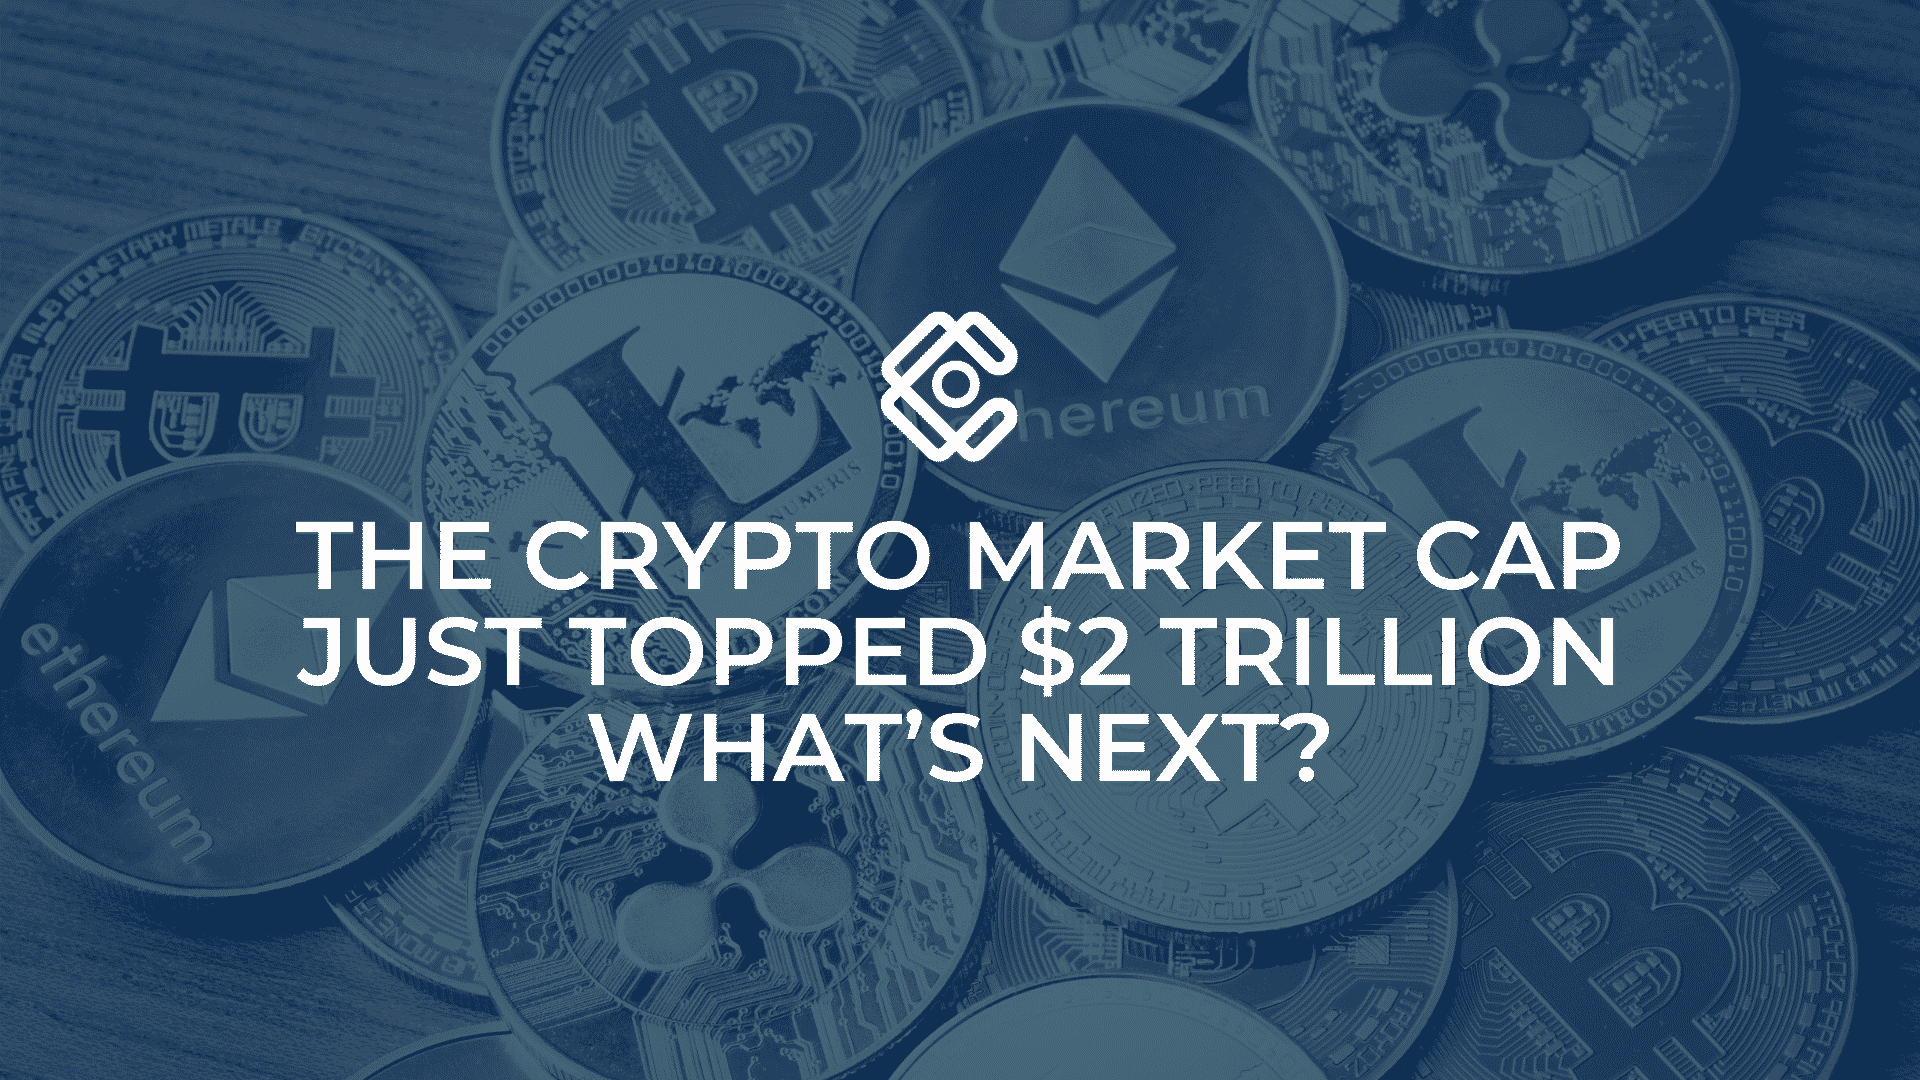 Crypto market cap just topped $2 trillion! What's next?